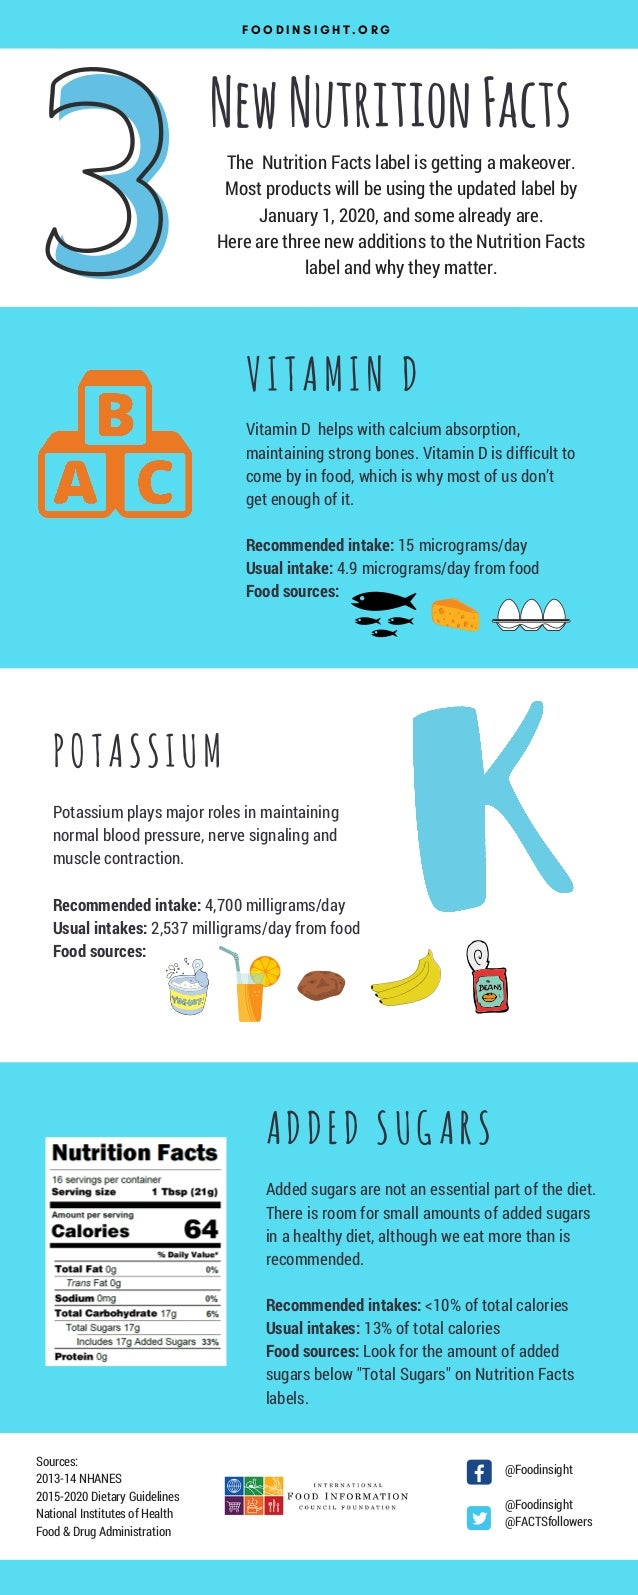 NewNutritionFacts F O O D I N S I G H T . O R G POTASSIUM Potassium plays major roles in maintaining normal blood pressure...